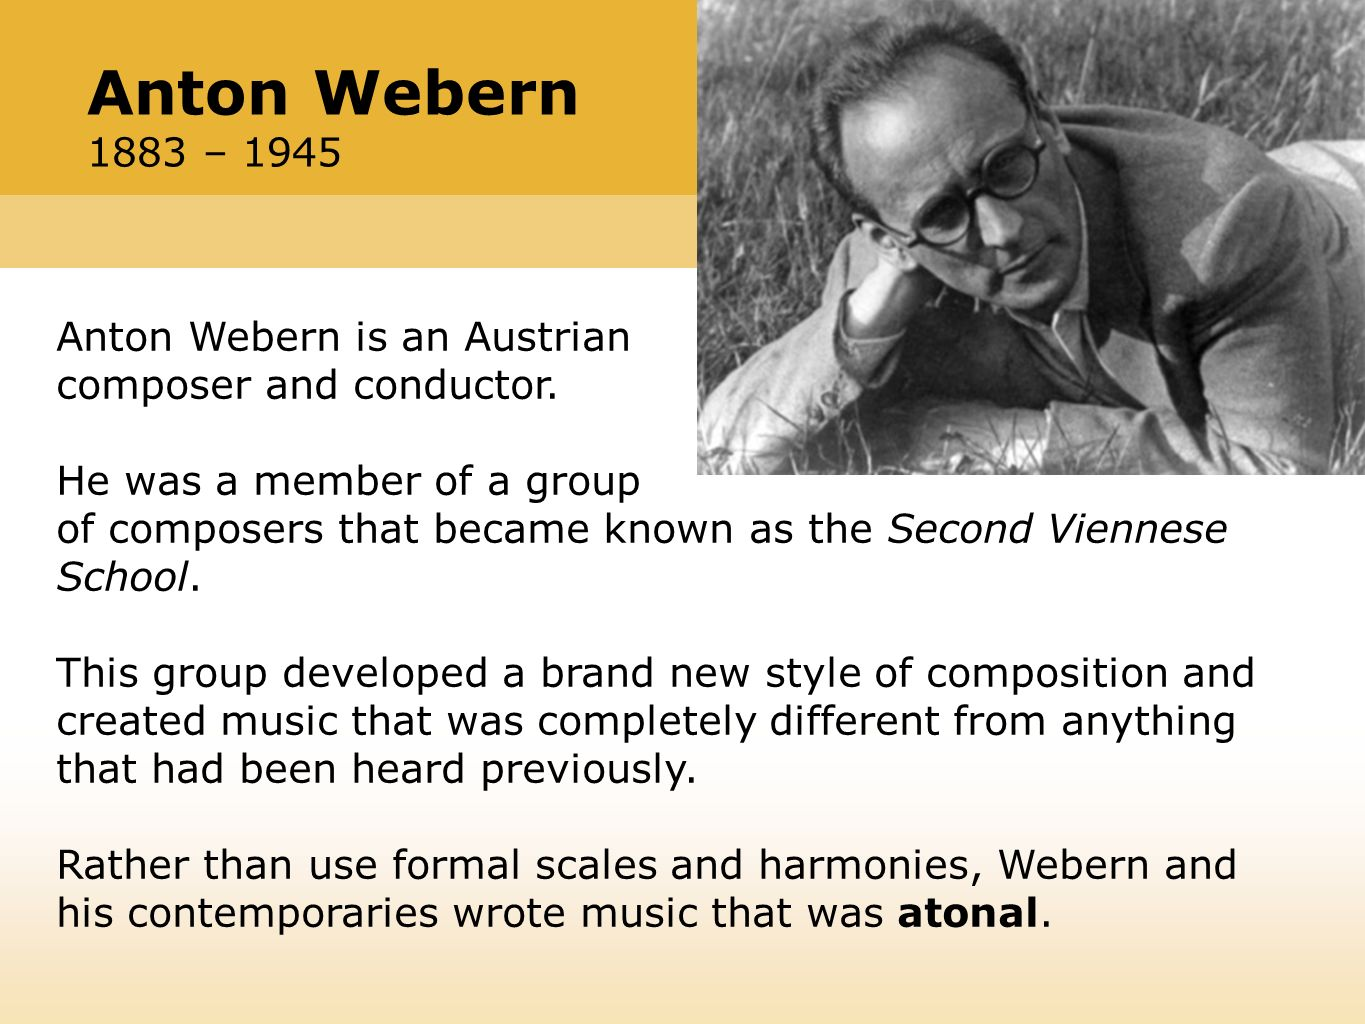 Anton Webern is an Austrian composer and conductor.